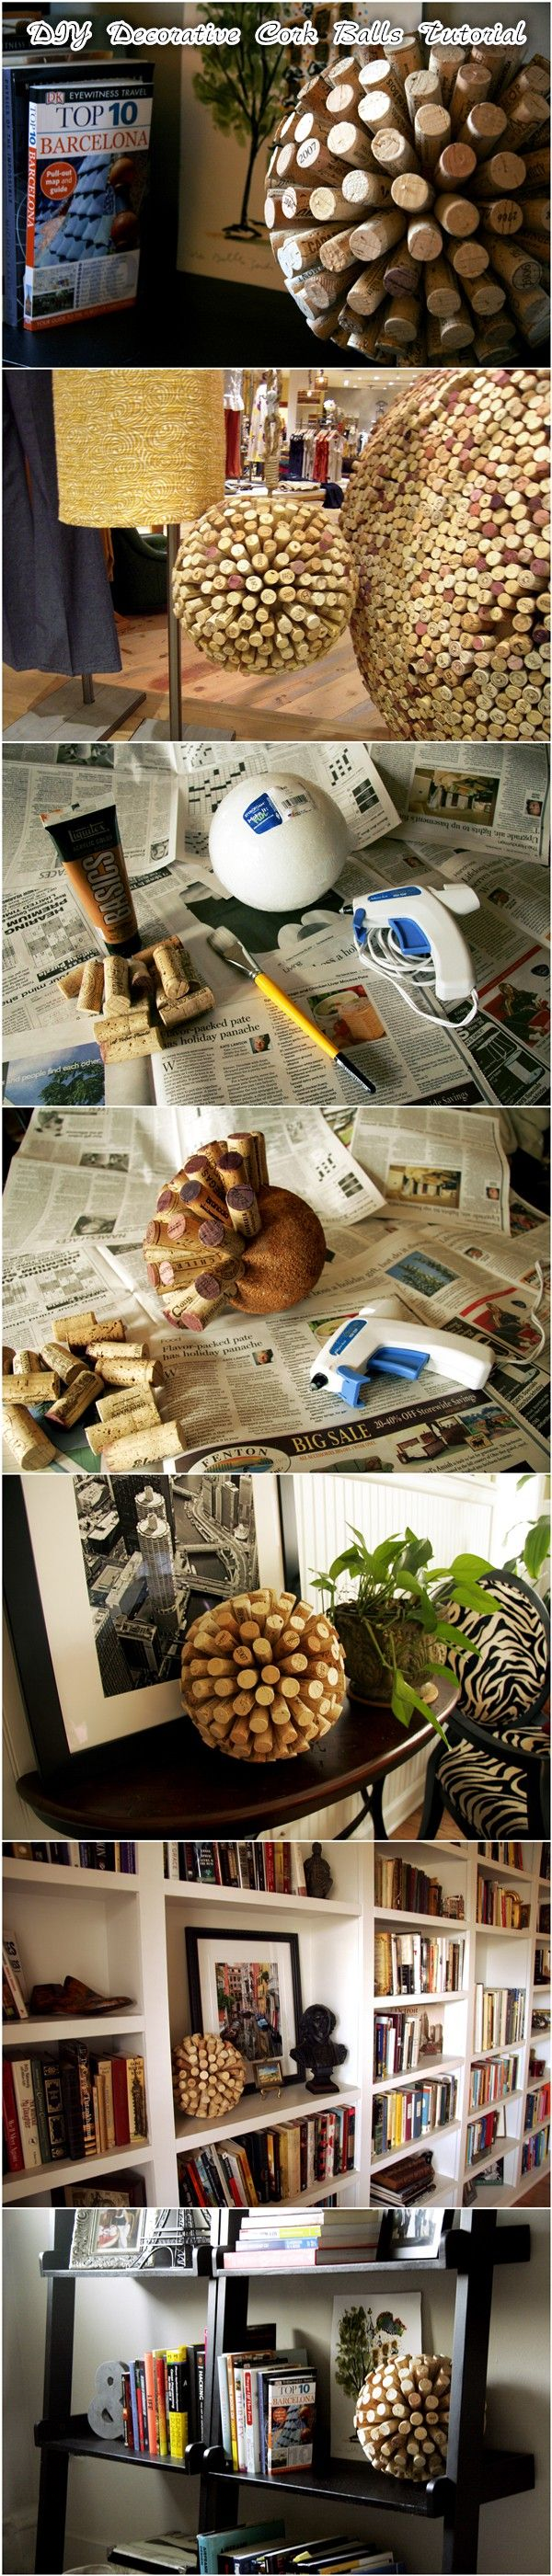 #DIY Decorative #Cork #Balls #Tutorial This #DIY #project is very easy and only requires a few supplies, most of which can be found at your local craft store. I got my corks from colleagues and family members who save them, however if you are not fortunate enough to have a slew of winos in your circle, you can purchase #used corks on eBay quite easily.